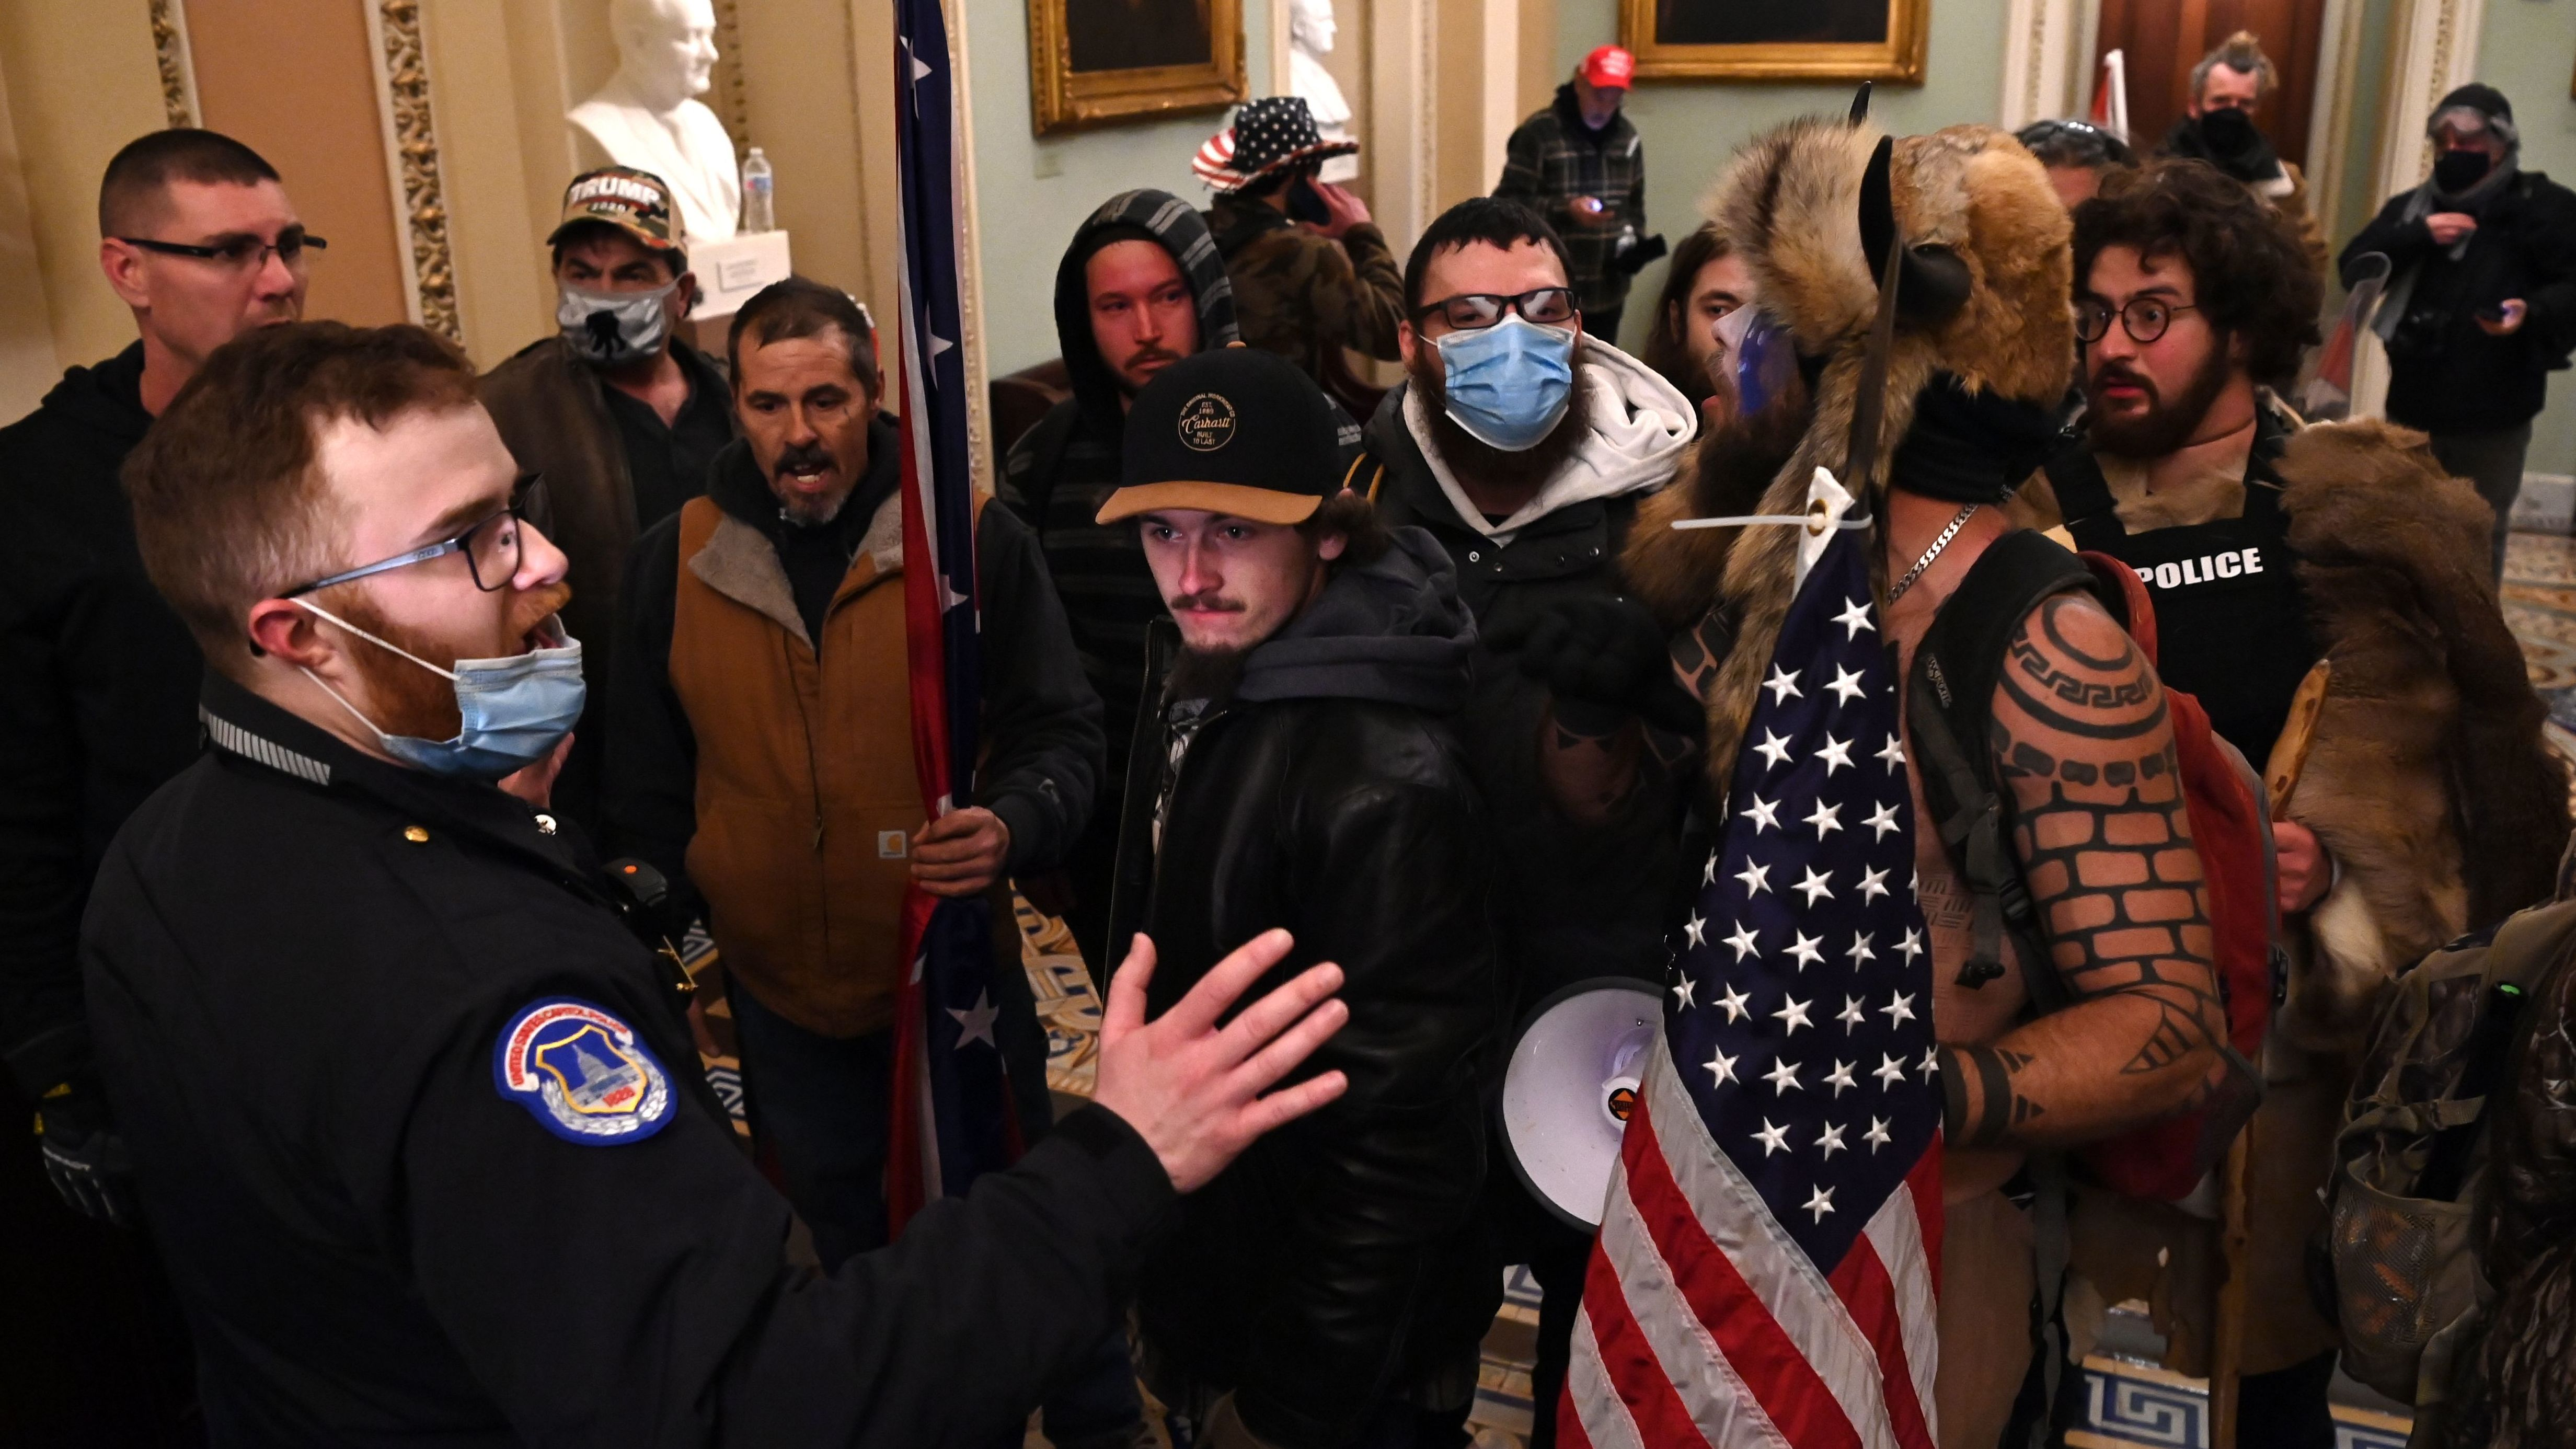 """Jacob Chansley, the """"QAnon Shaman"""" known for his painted face and horned hat, was taken into custody in Arizona in connection with the assault on the U.S. Capitol on Jan 6."""